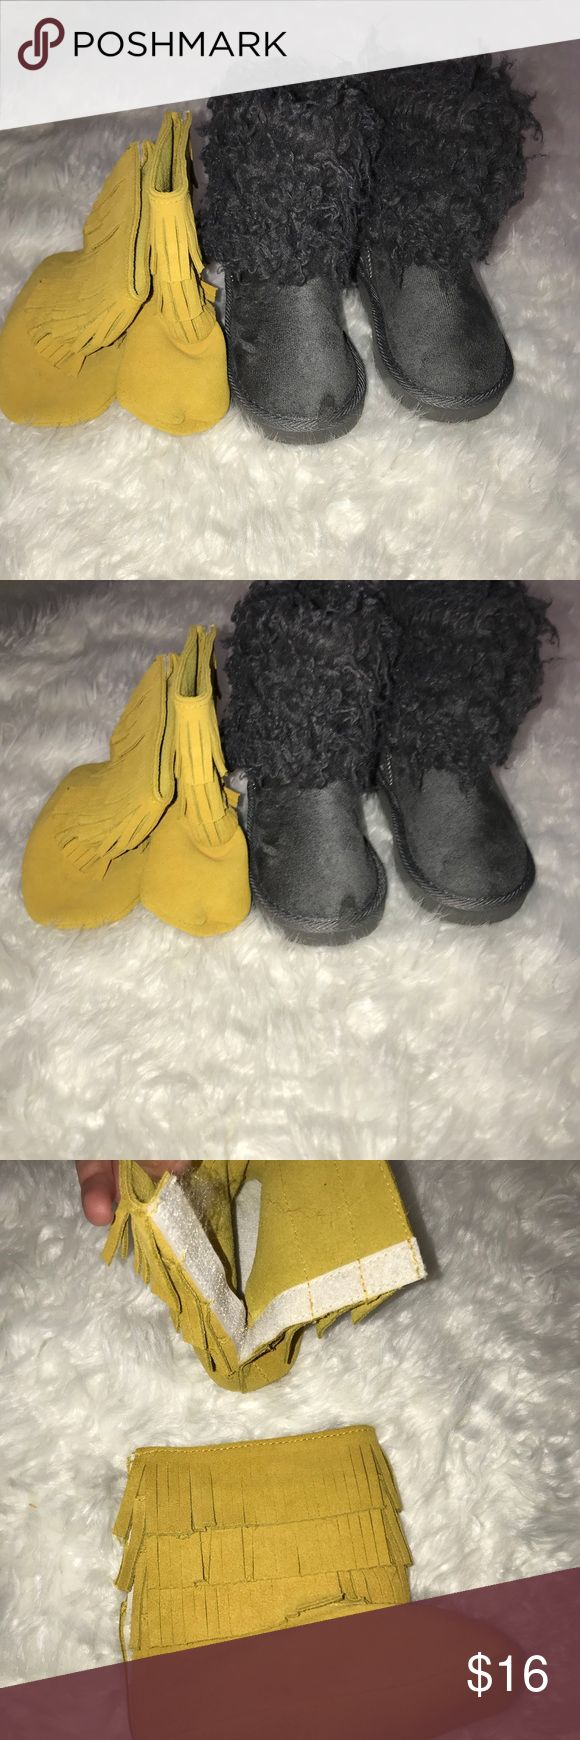 Toddler girls boots 7c Good condition toddler girl boots. Mustard yellow.mocs and gray boots. Barely worn.  Bought yellow boots off of baileys blossom   Gray were bought off zulily toddler girl 7 Shoes Boots